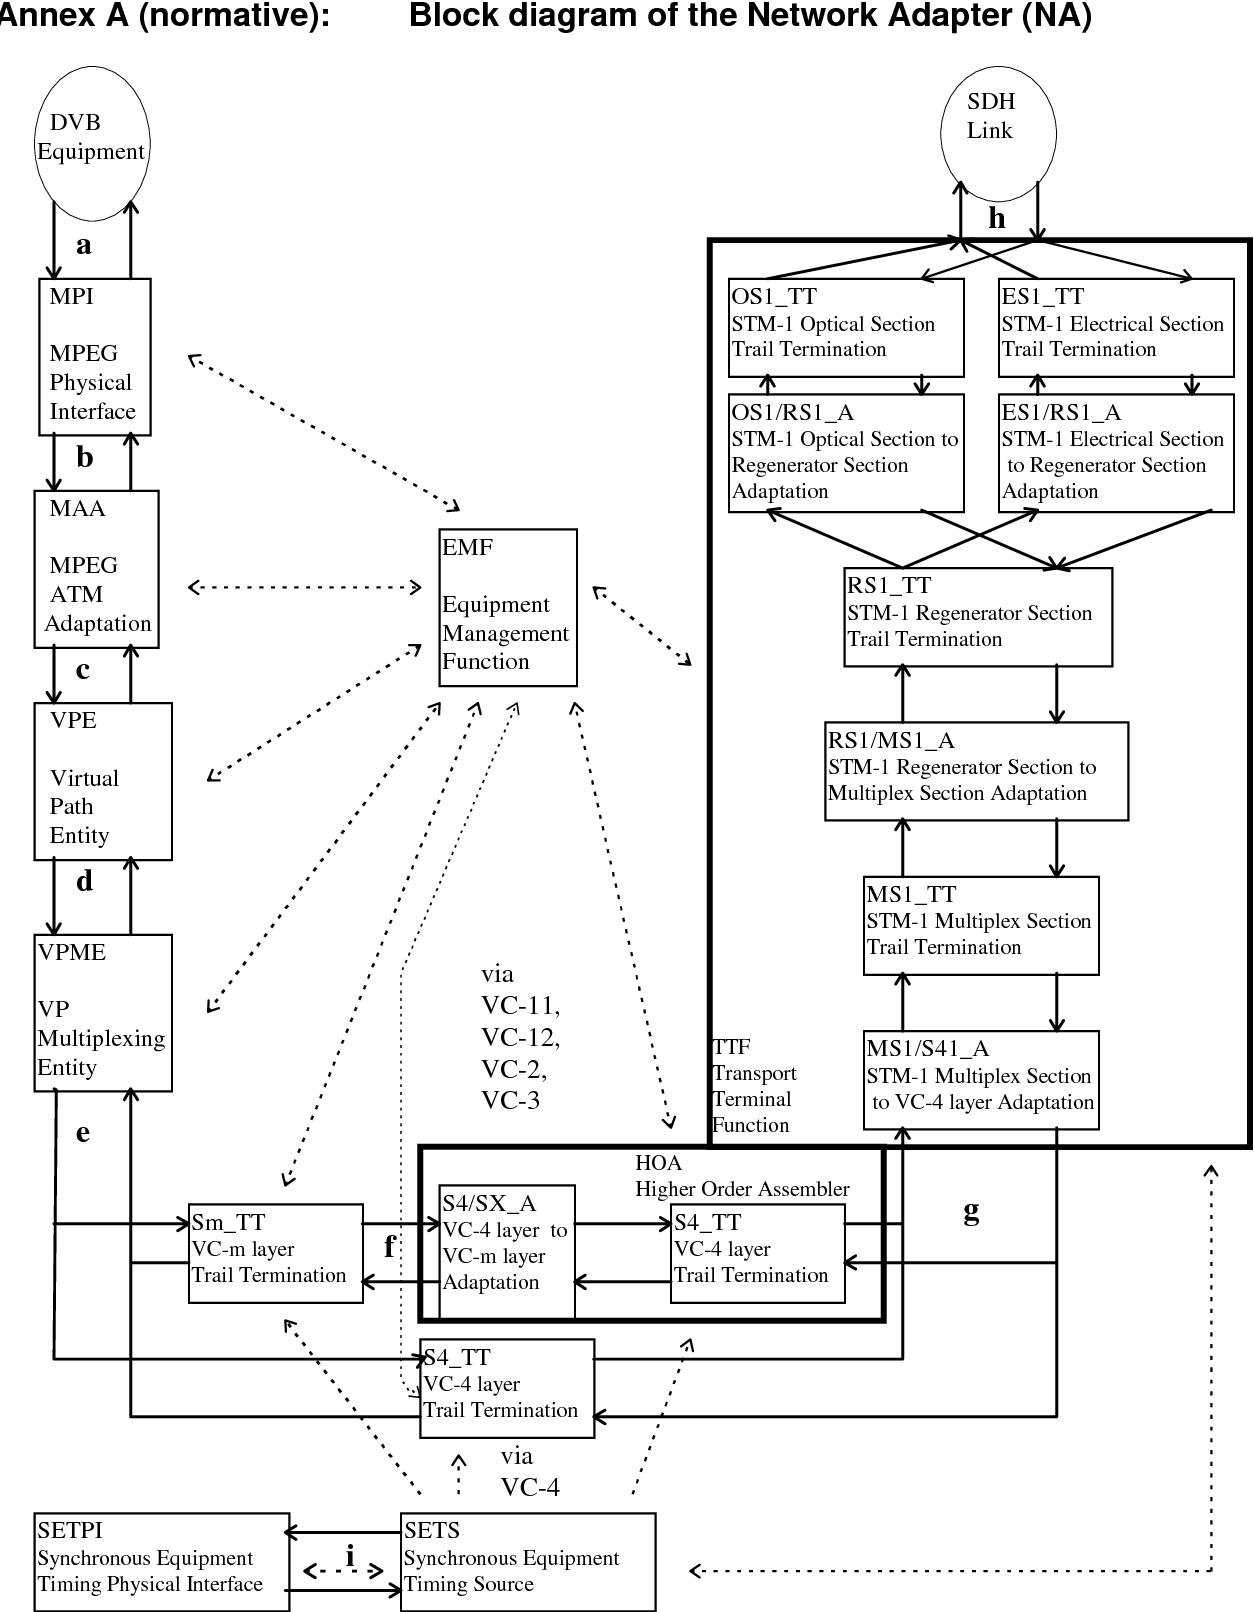 hight resolution of figure a 1 functional blocks of the sdh network adapter